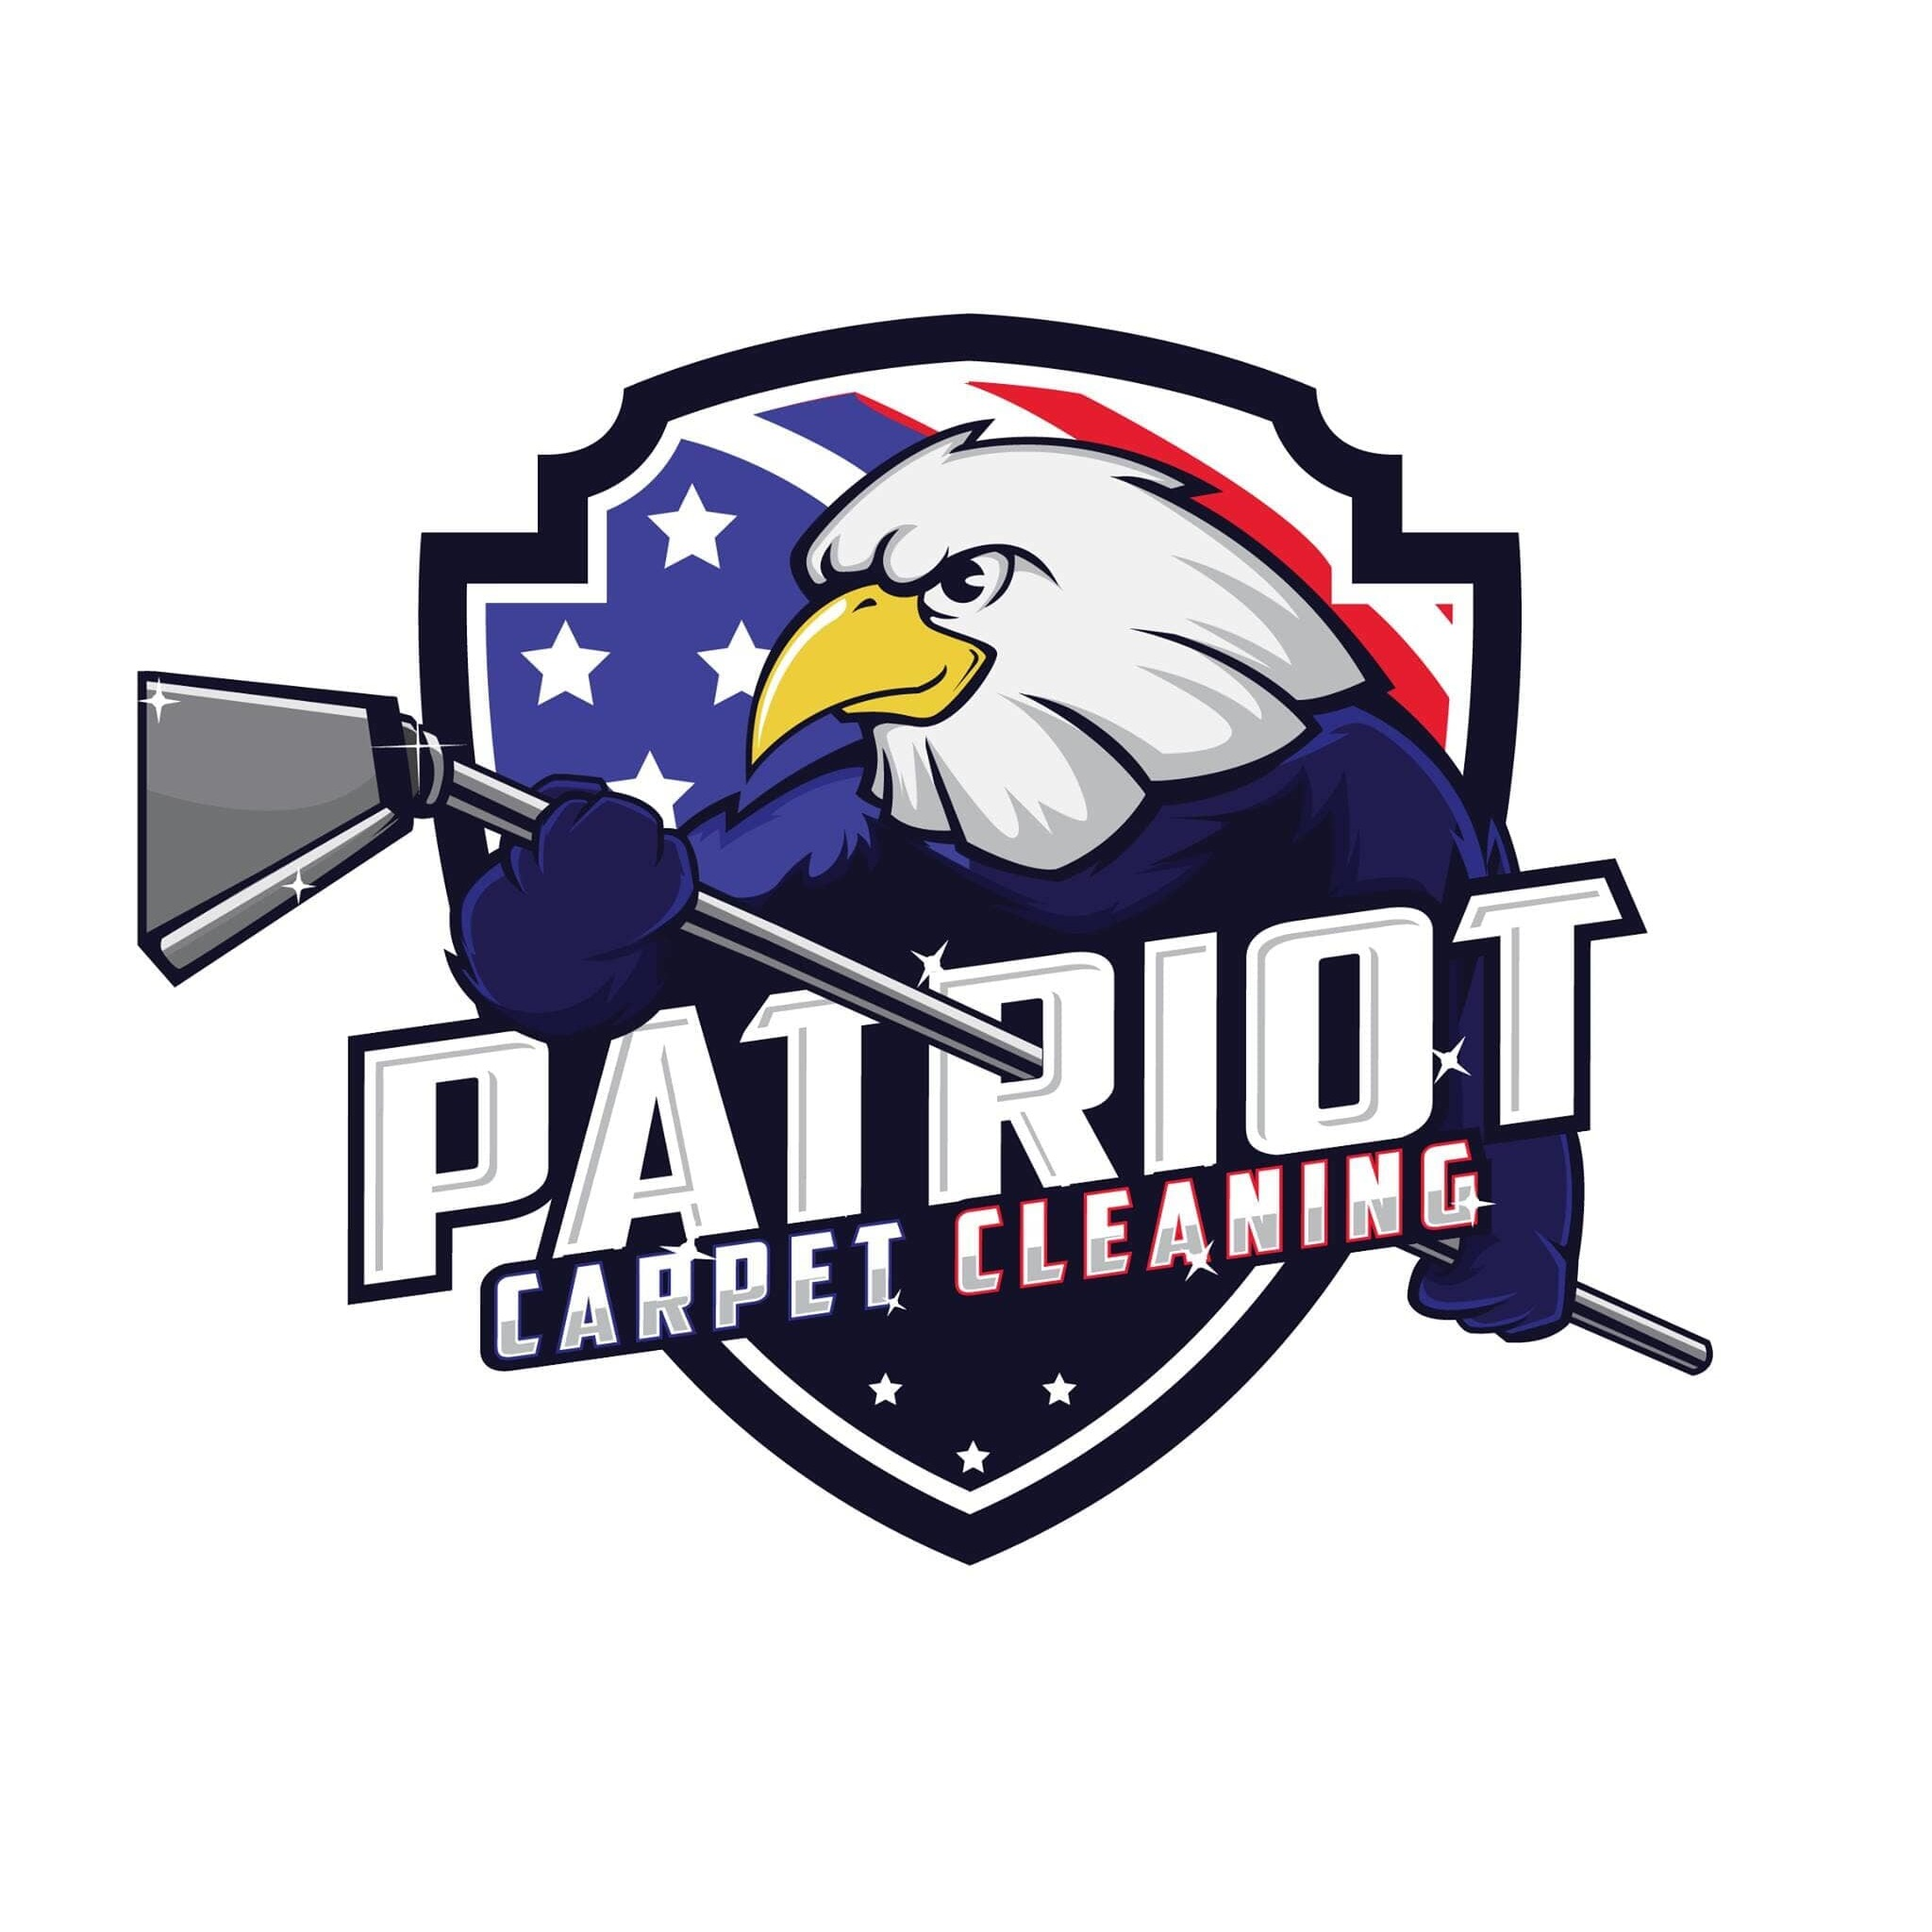 Patriot Carpet Cleaning image 4